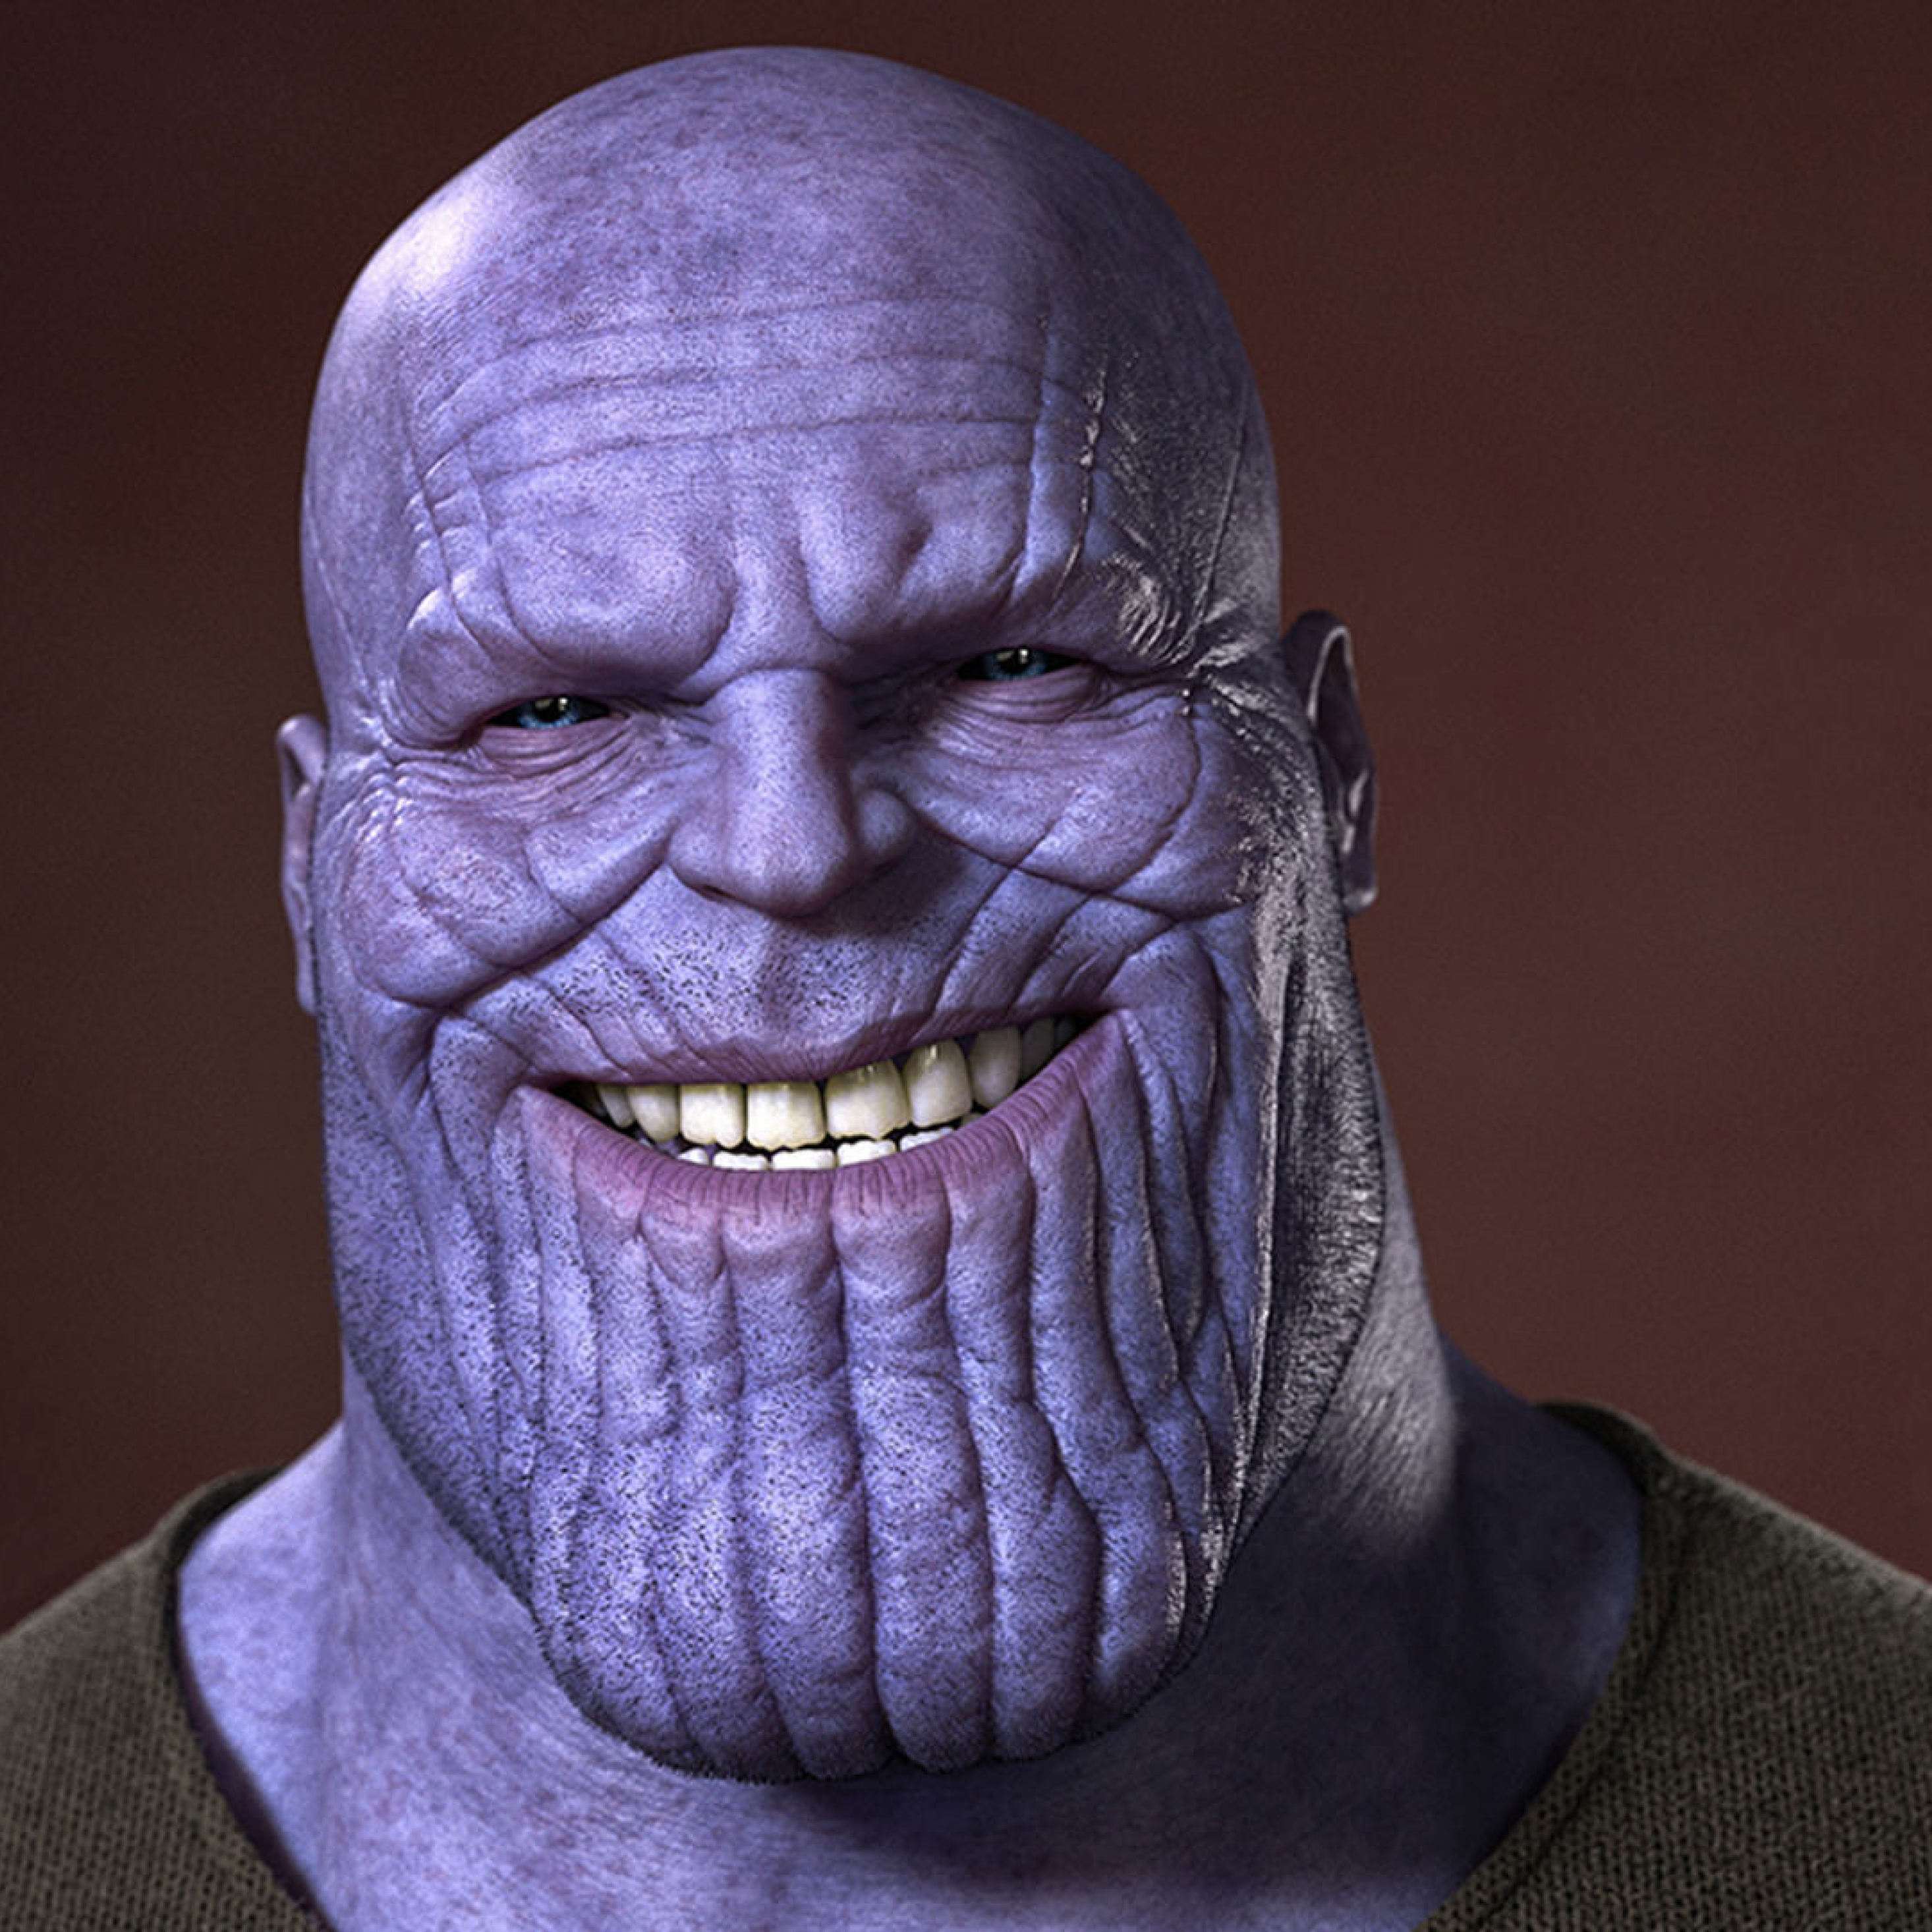 Download Thanos Smiling 840x1160 Resolution, Full HD Wallpaper